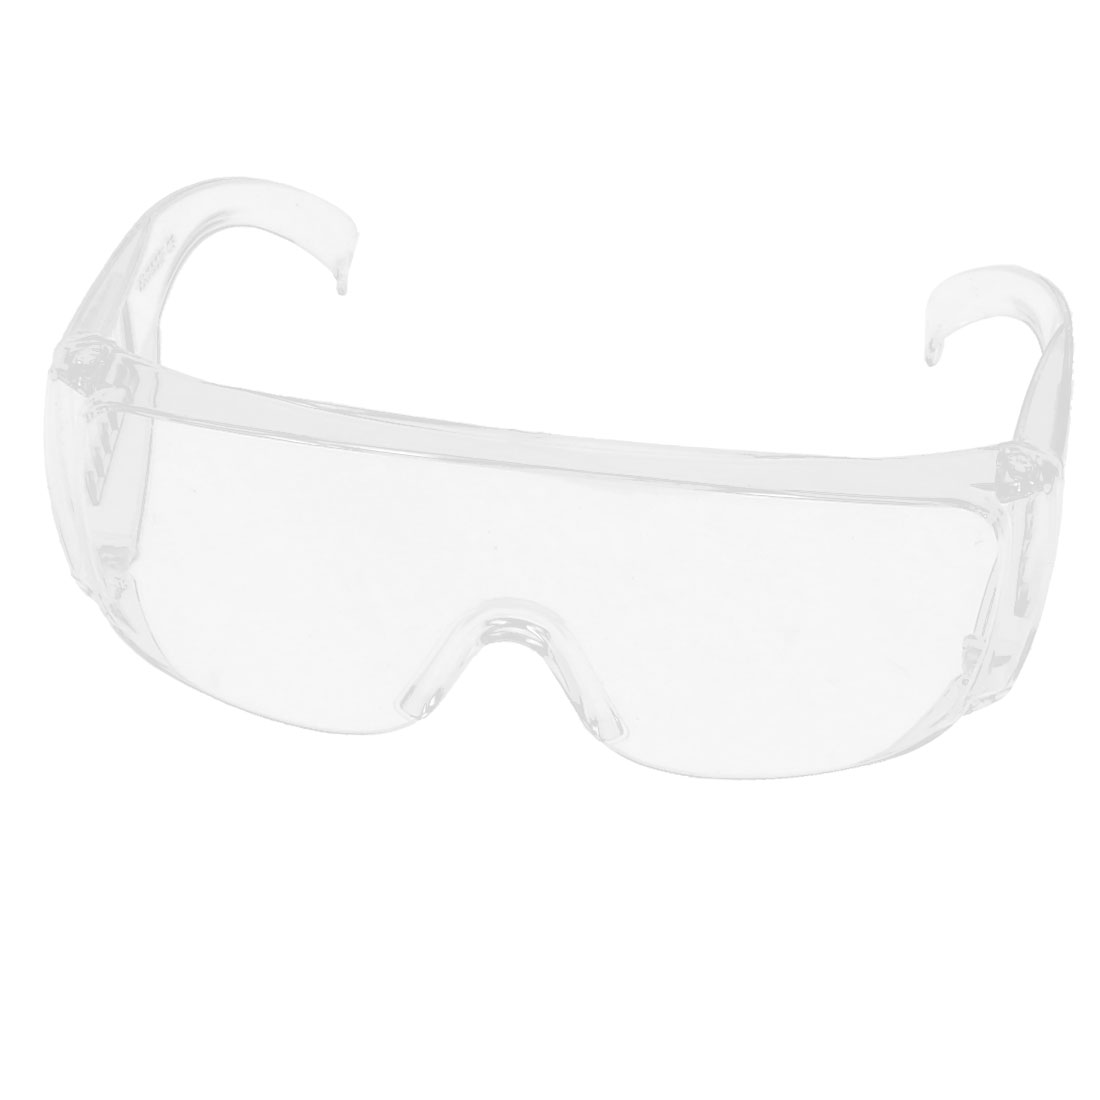 Replacement Plastic Clear Lens Protective Safety Glasses Goggles